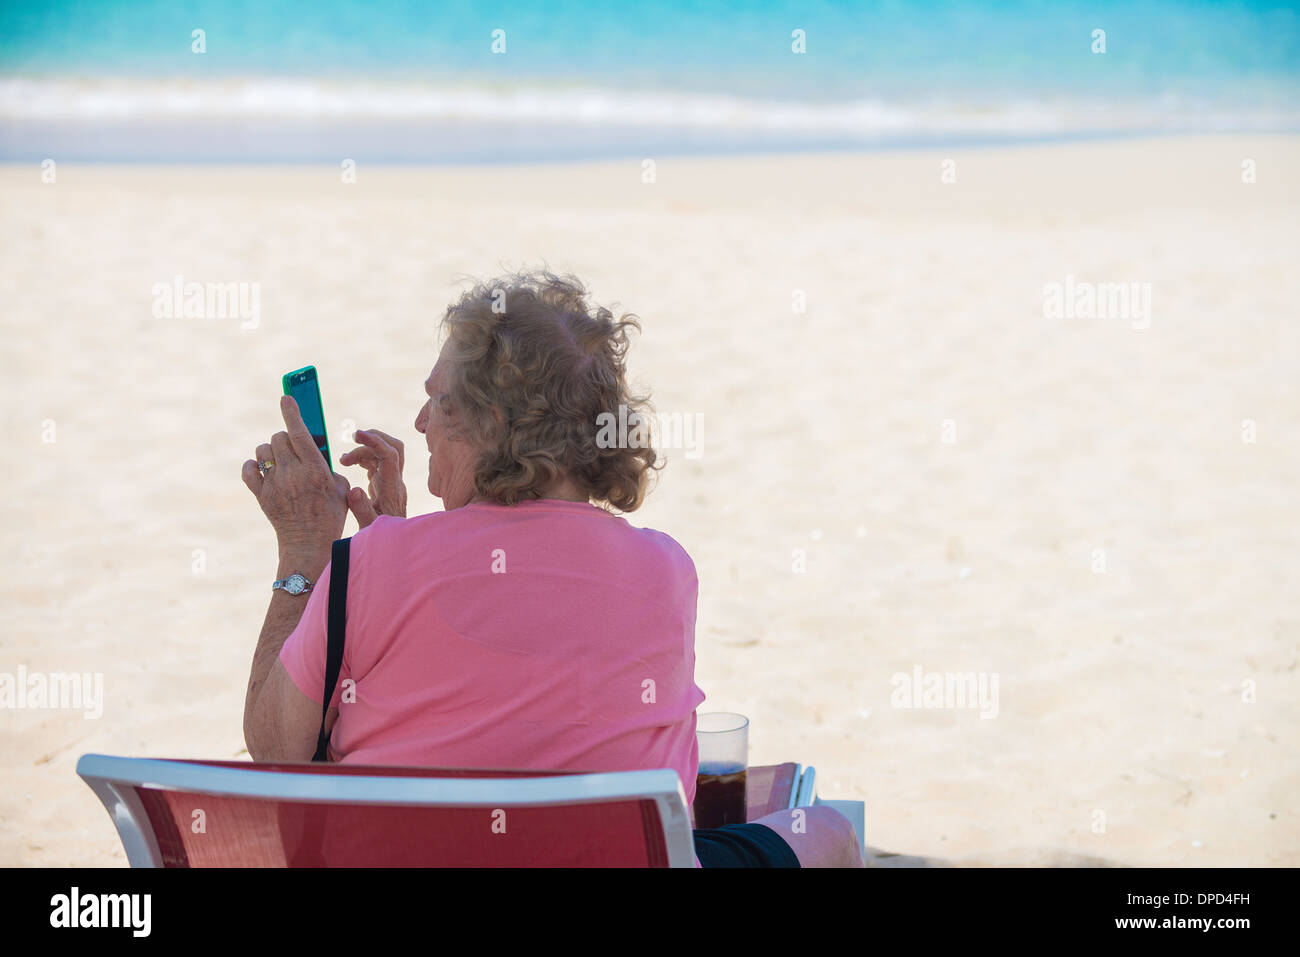 An elderly Caucasian woman sits in a beach chair on Sandcastle Beach, facing the Caribbean sea and plays with her smart phone. - Stock Image